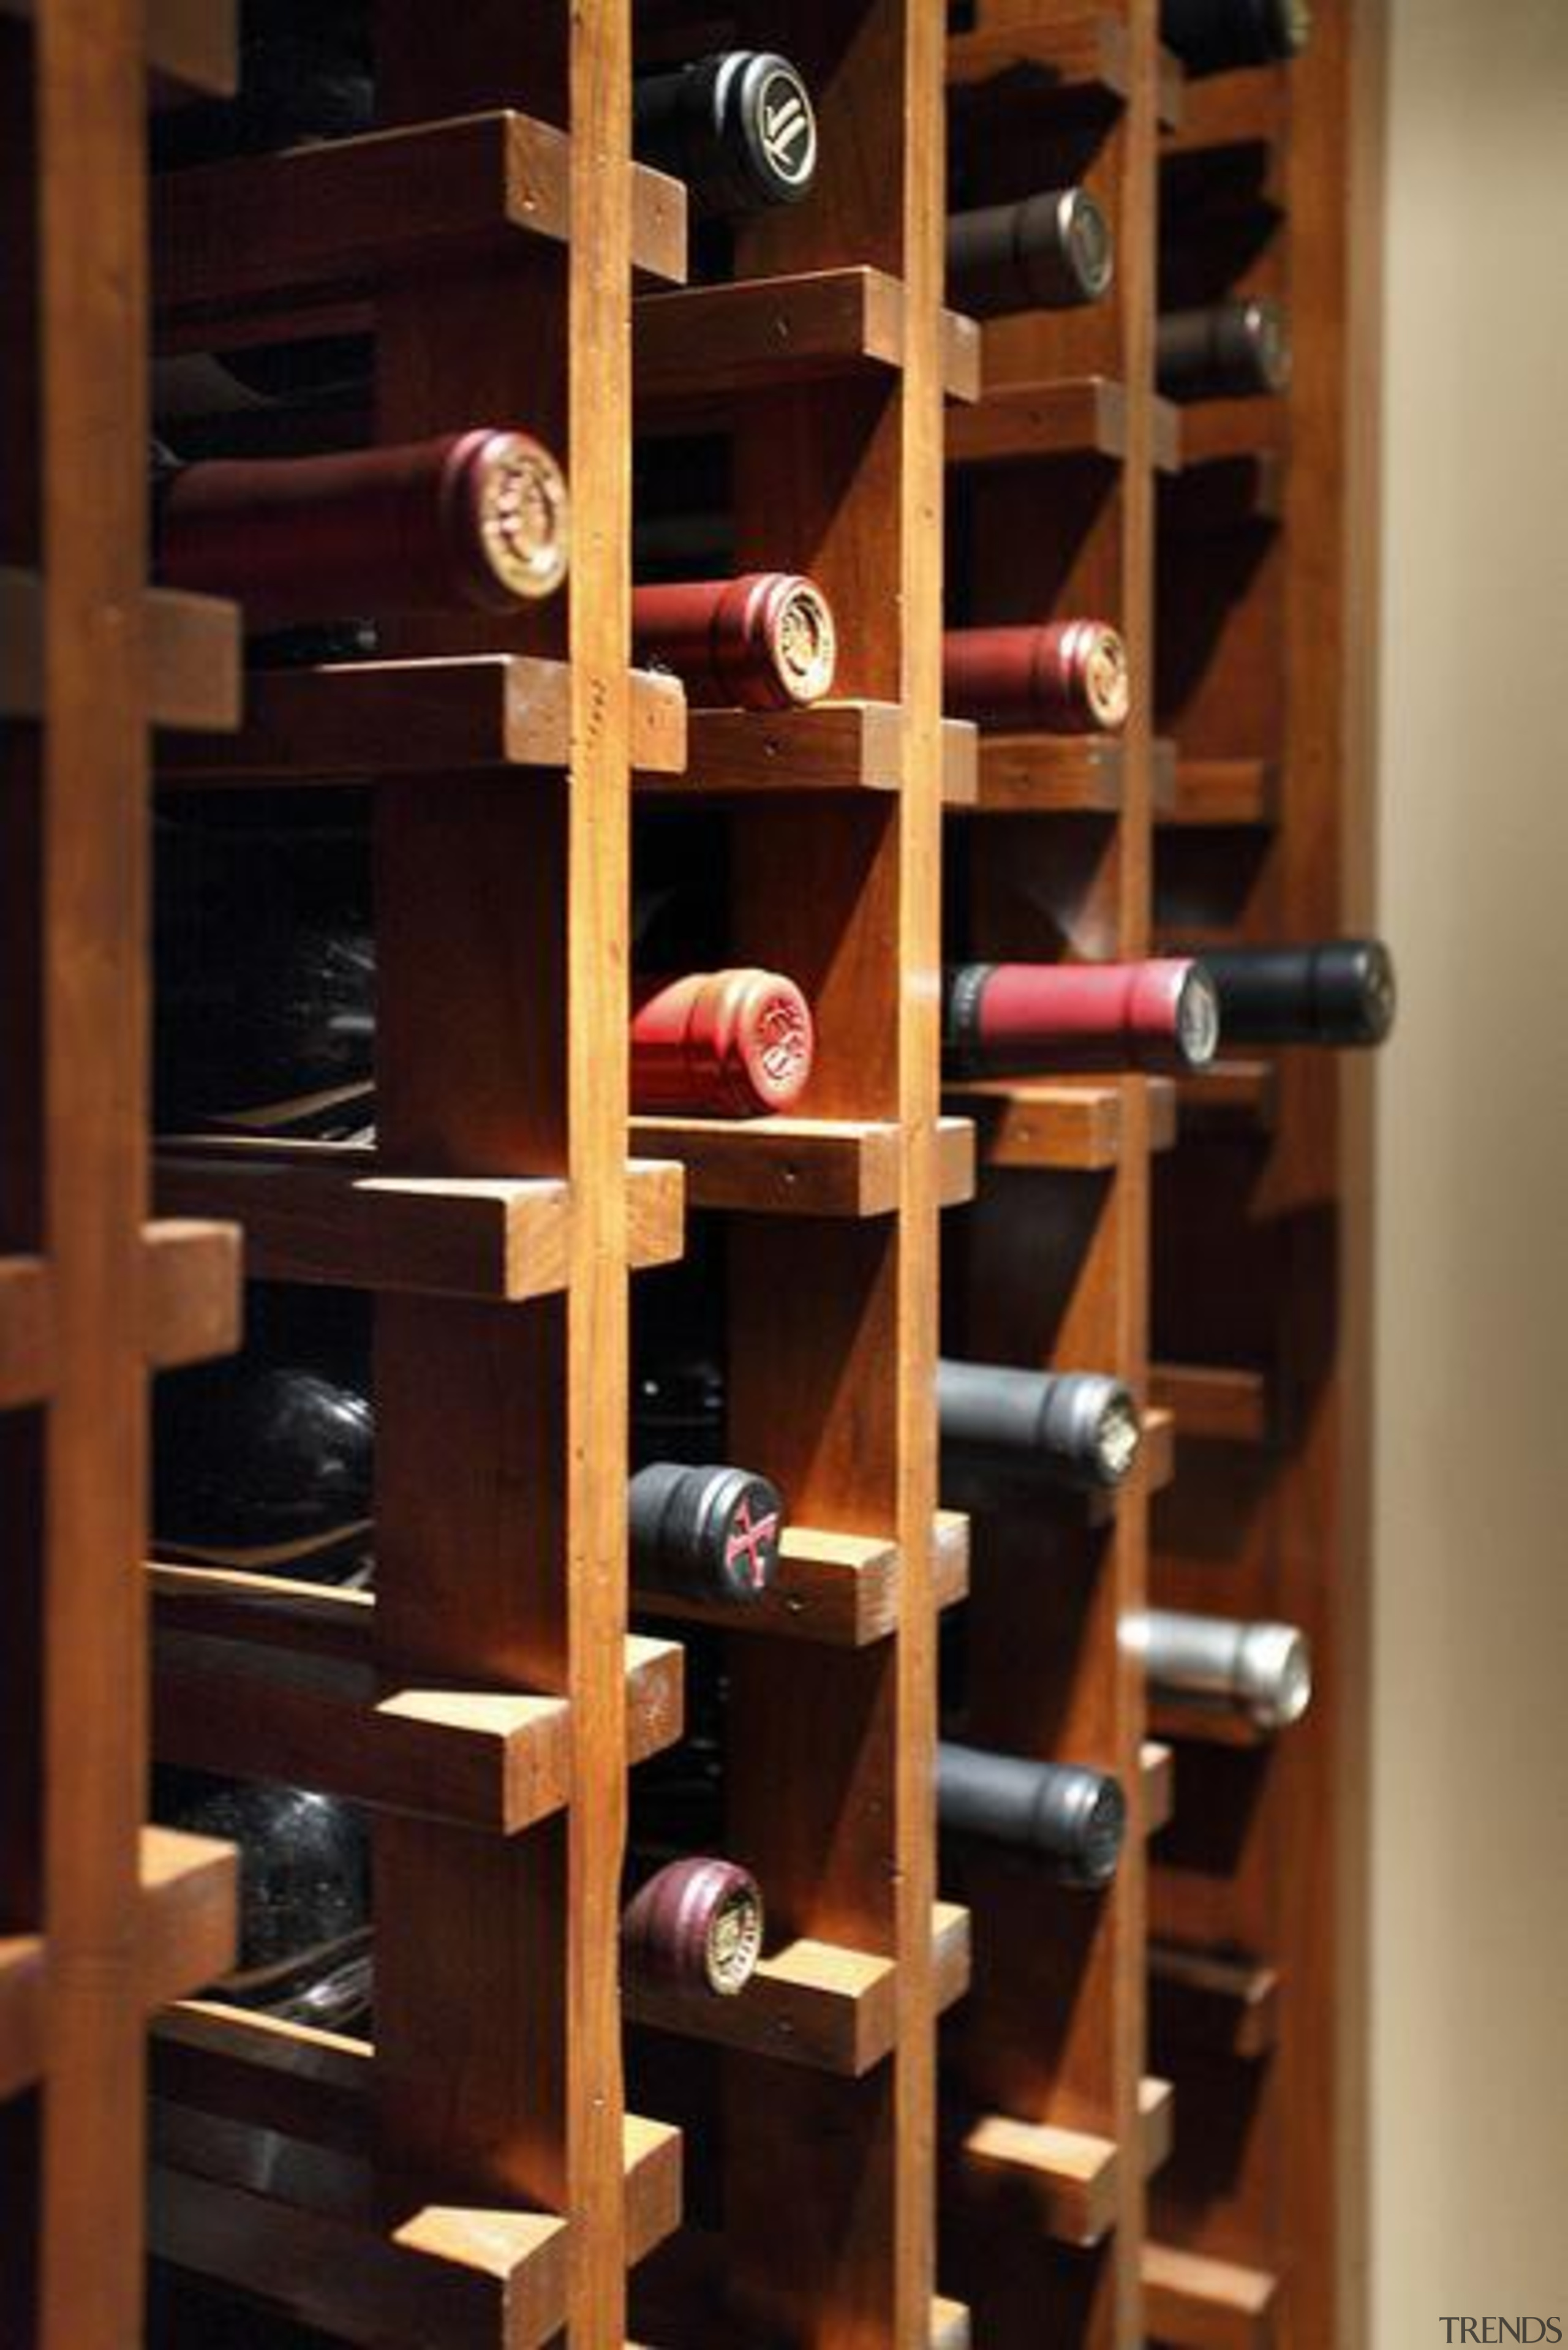 Because of its expansive and wide-open layout, a bookcase, furniture, shelf, shelving, wine cellar, wine rack, winery, black, brown